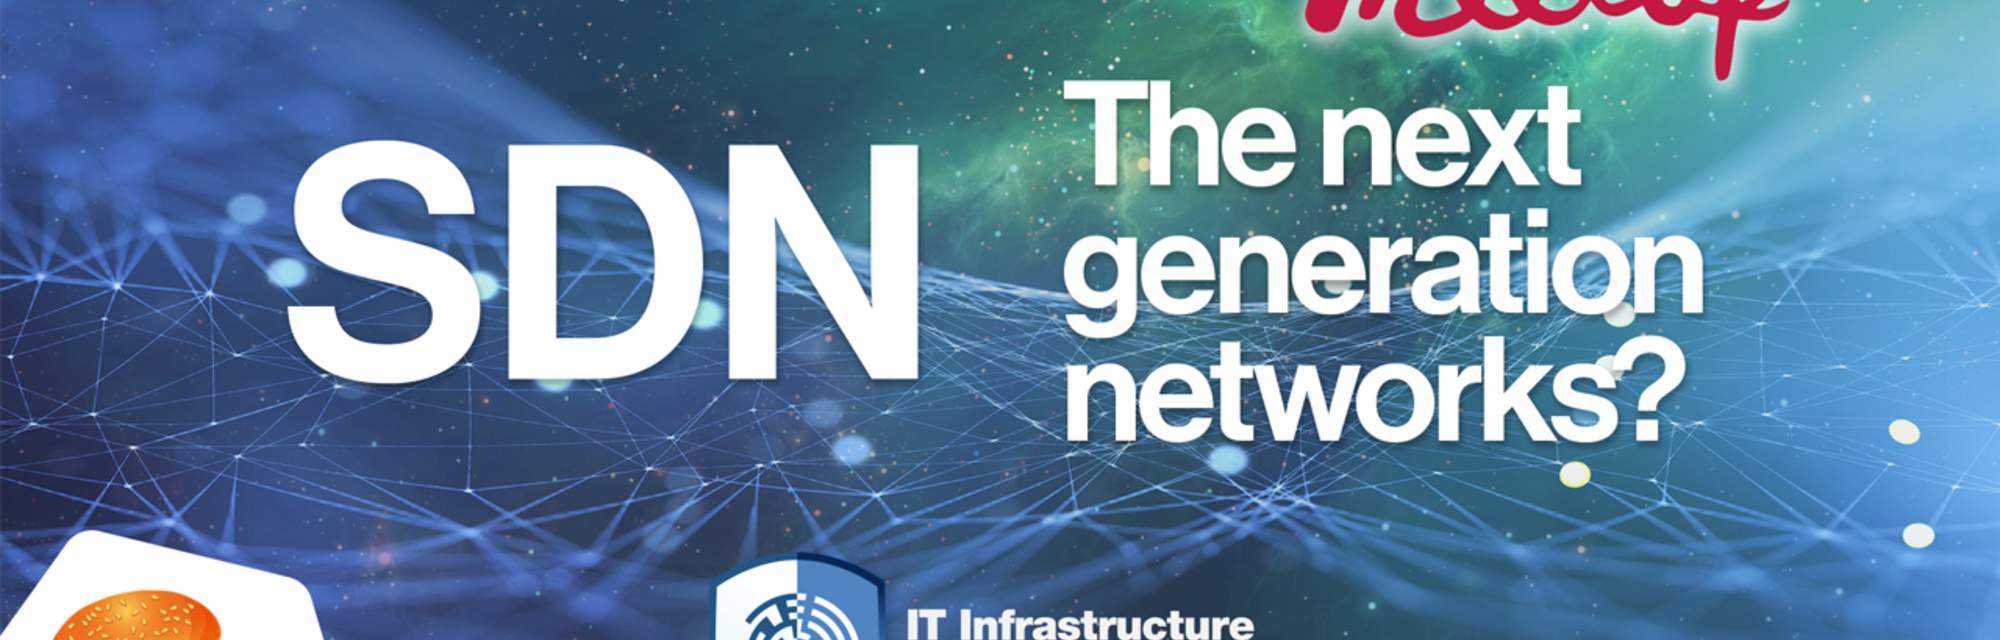 Next generation networks event banner